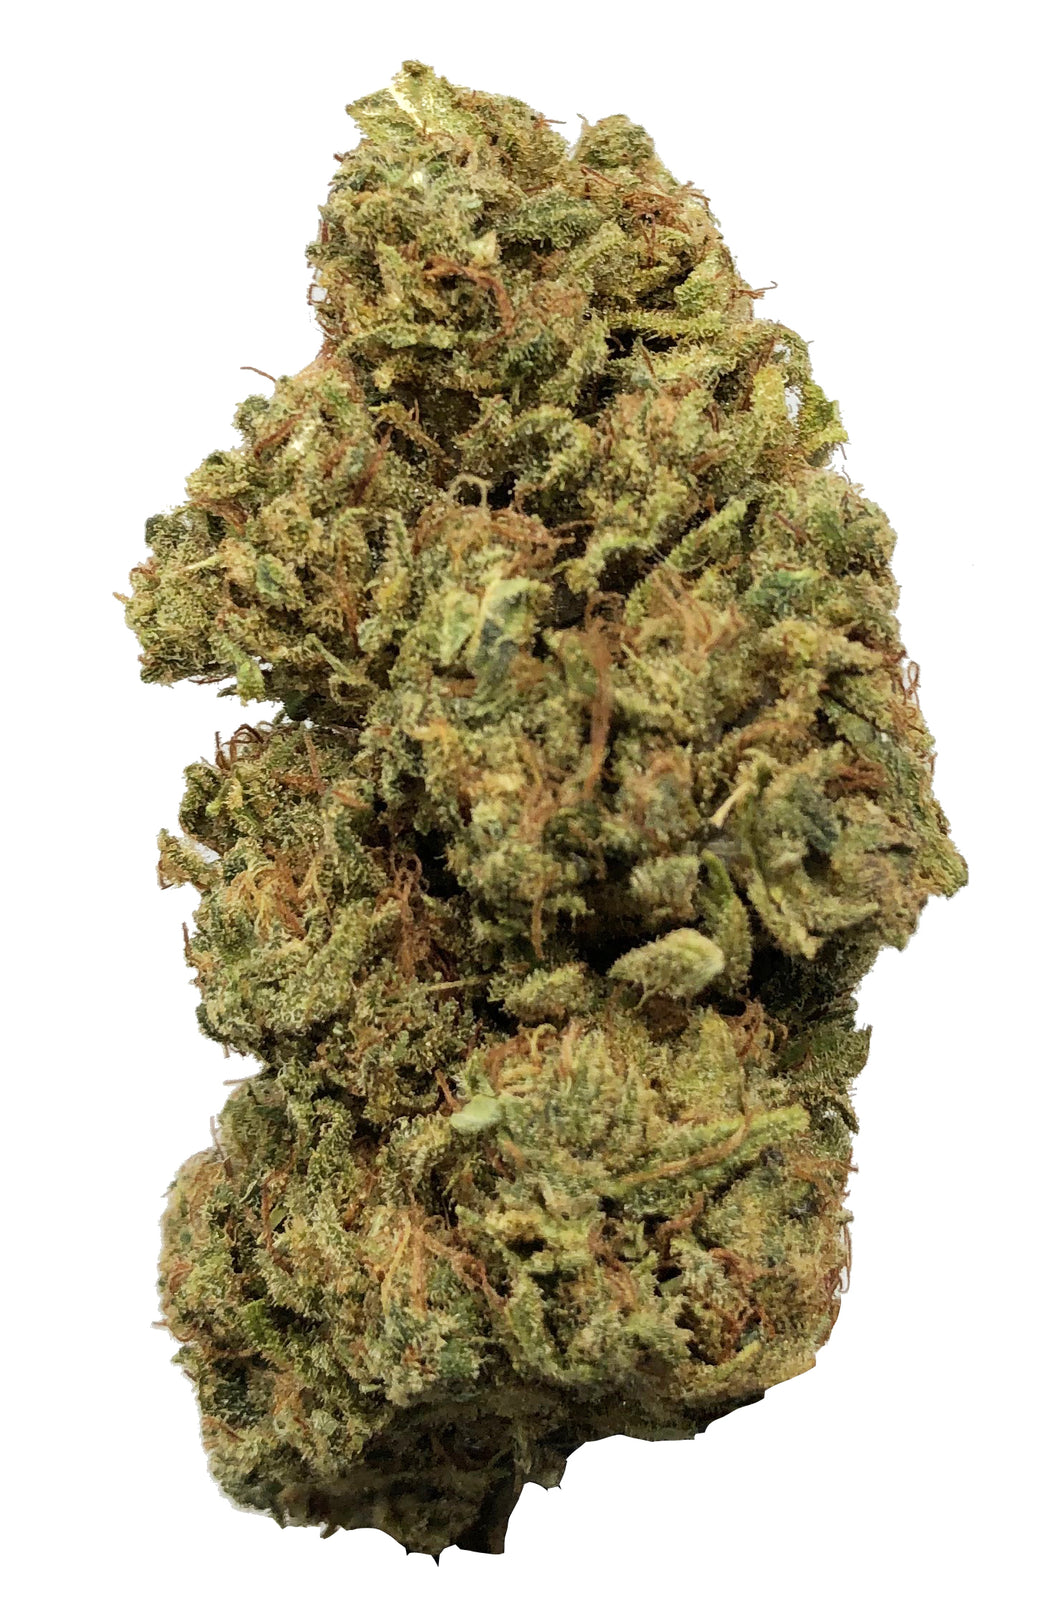 Orange Kush CBD Hemp Flower - High CBG & Terpenes